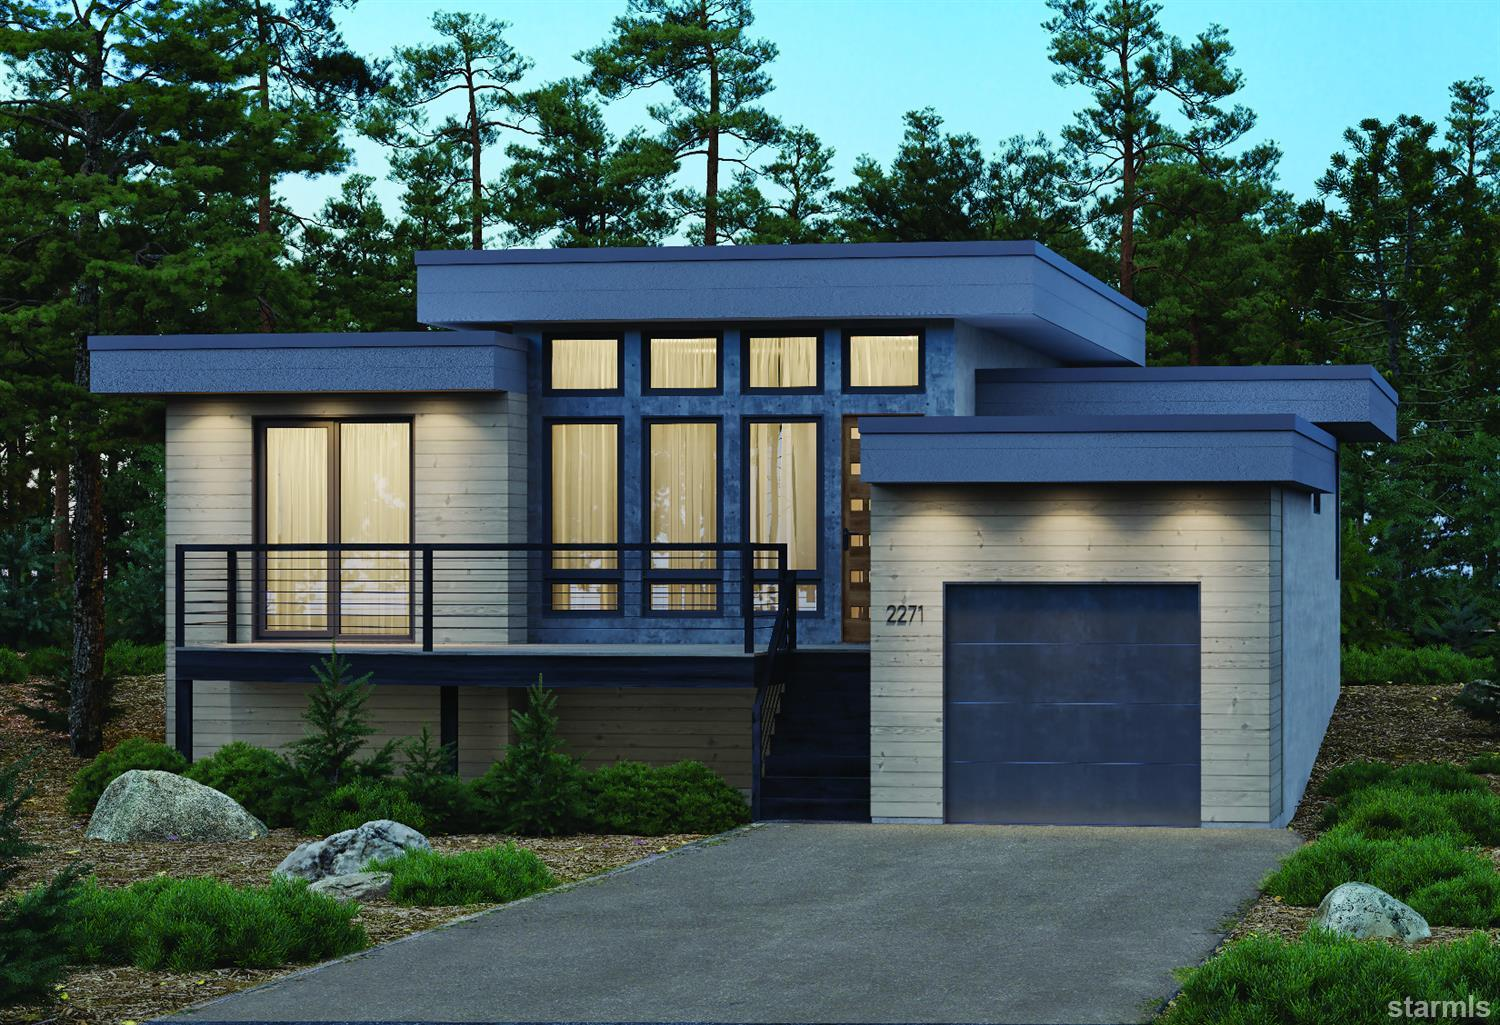 Image for 2271 Silver Tip Avenue, South Lake Tahoe, CA 96150